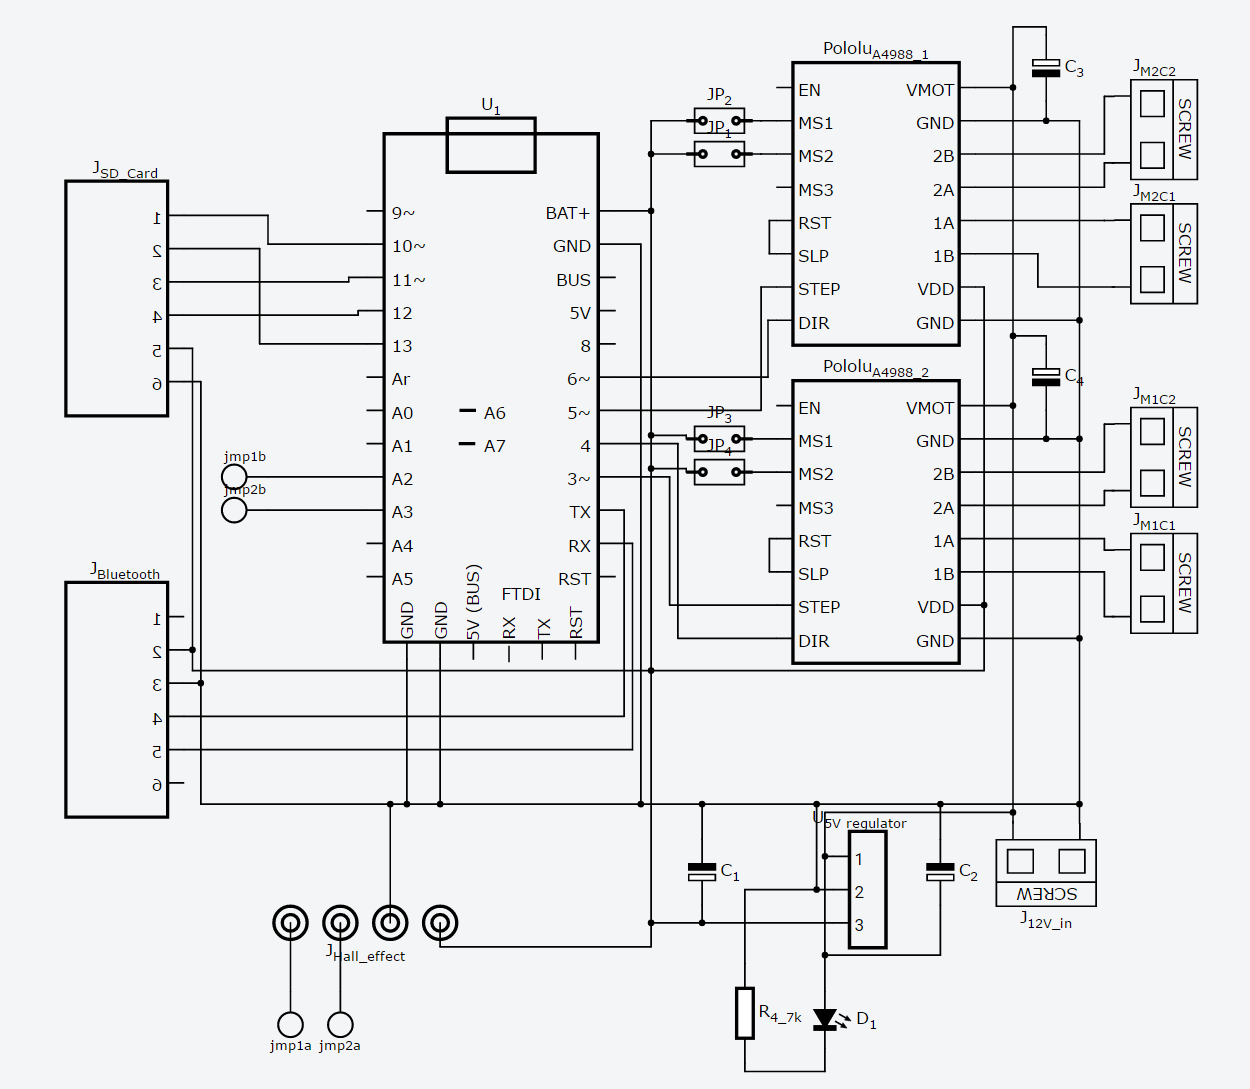 Working On A Draft Schematic And Pcb Details Circuit Diagram 2 Including Header For Sf30 Either 9dof Board Or Lidar Lite